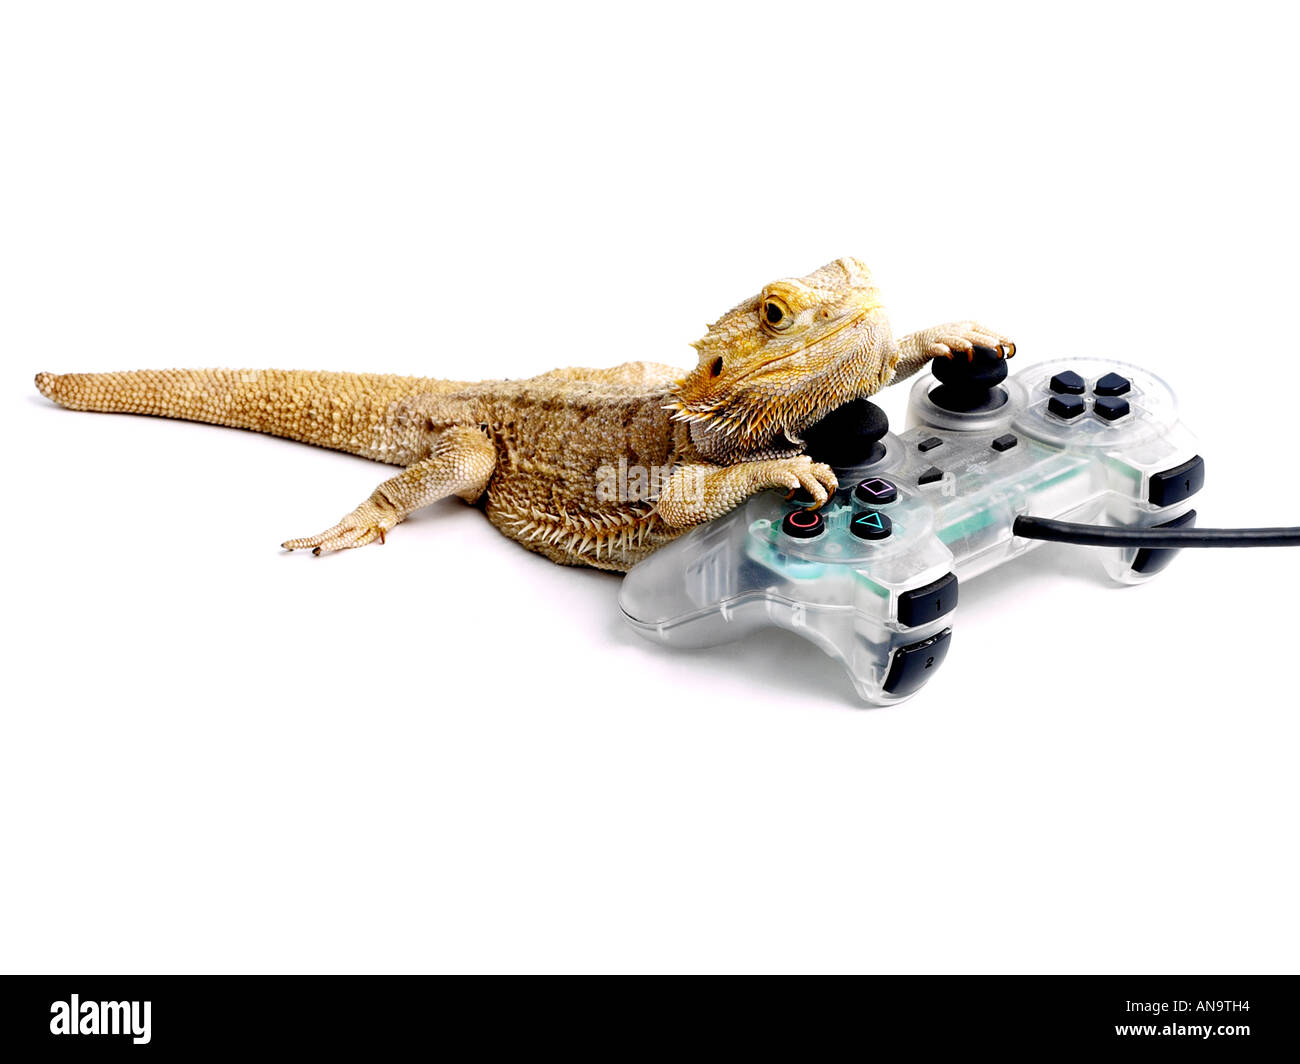 Bearded dragon with a playstation. - Stock Image